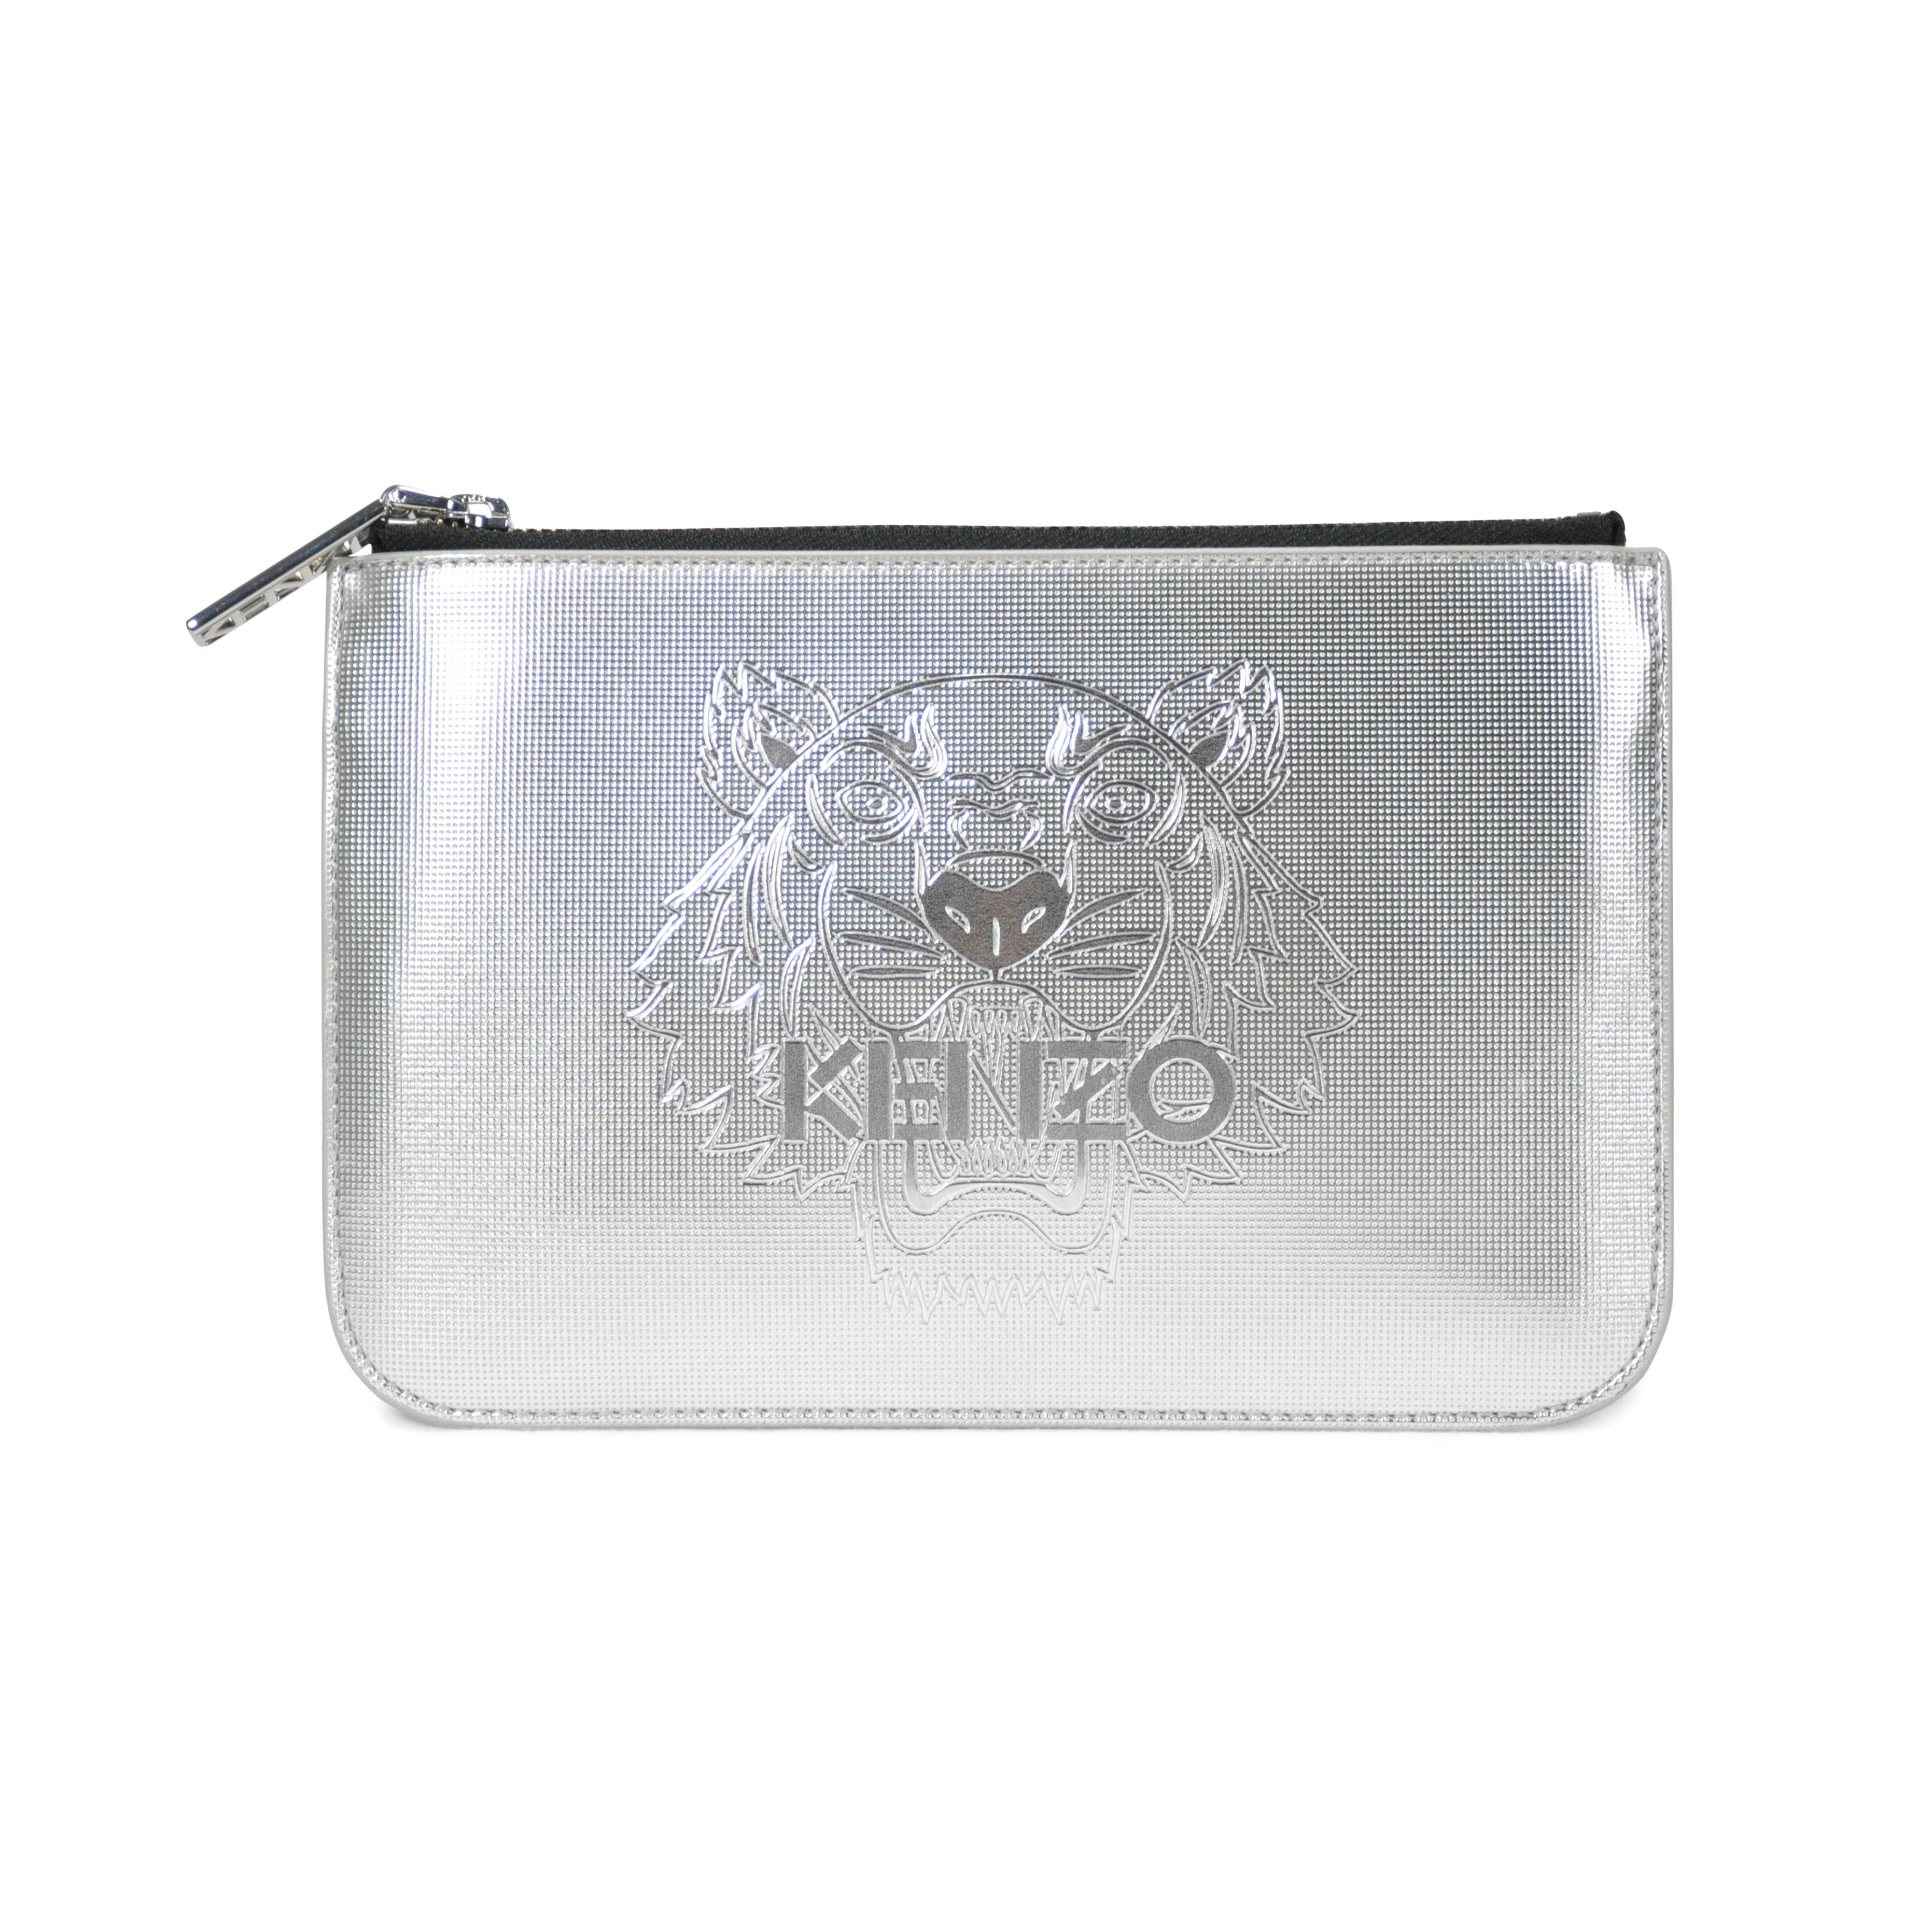 5355c3fb32e Authentic Second Hand Kenzo Tiger Metallic Clutch (PSS-114-00012) - THE  FIFTH COLLECTION